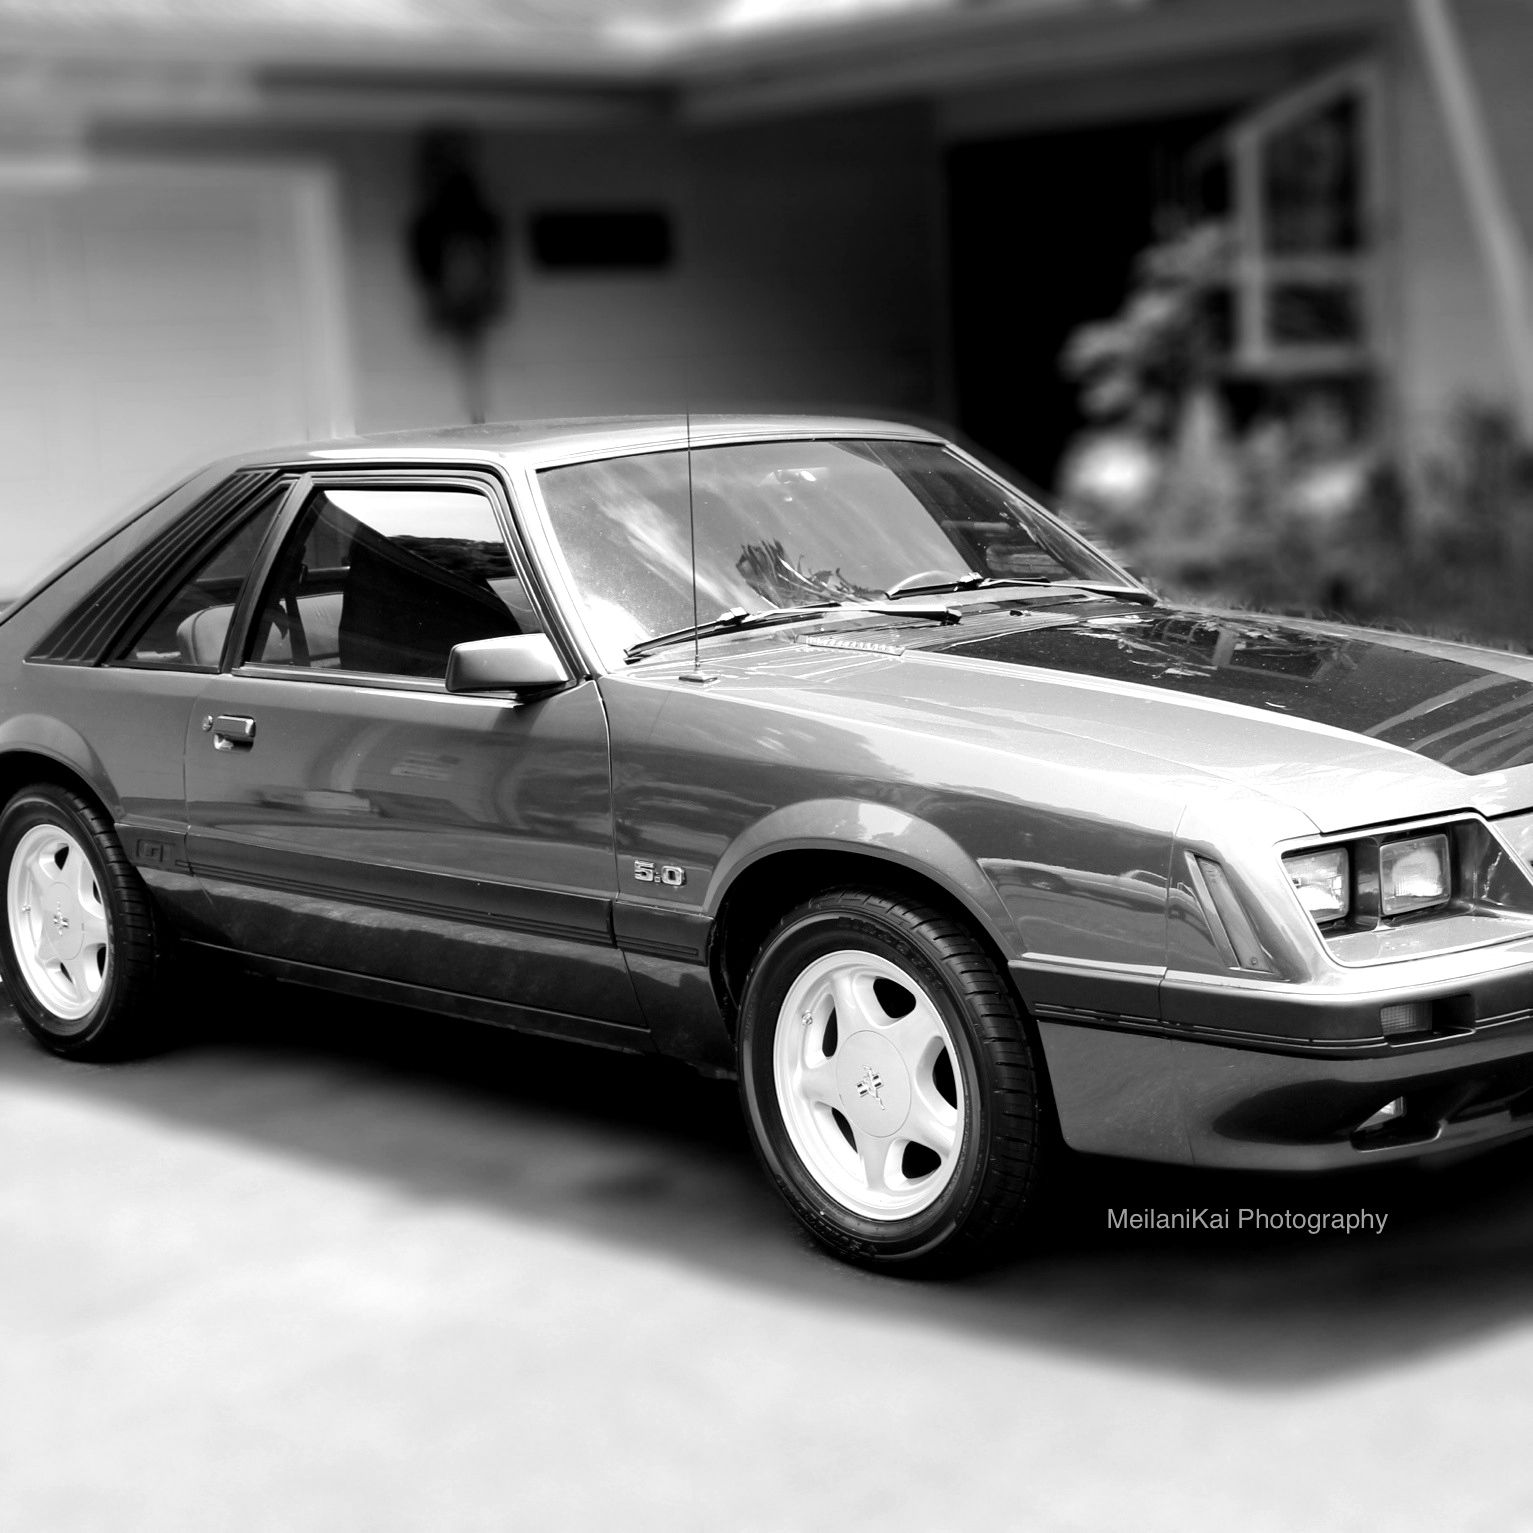 Black Mustang Silvers: My Silver Pepper Grey & Black 1986 Ford Mustang GT 5-0